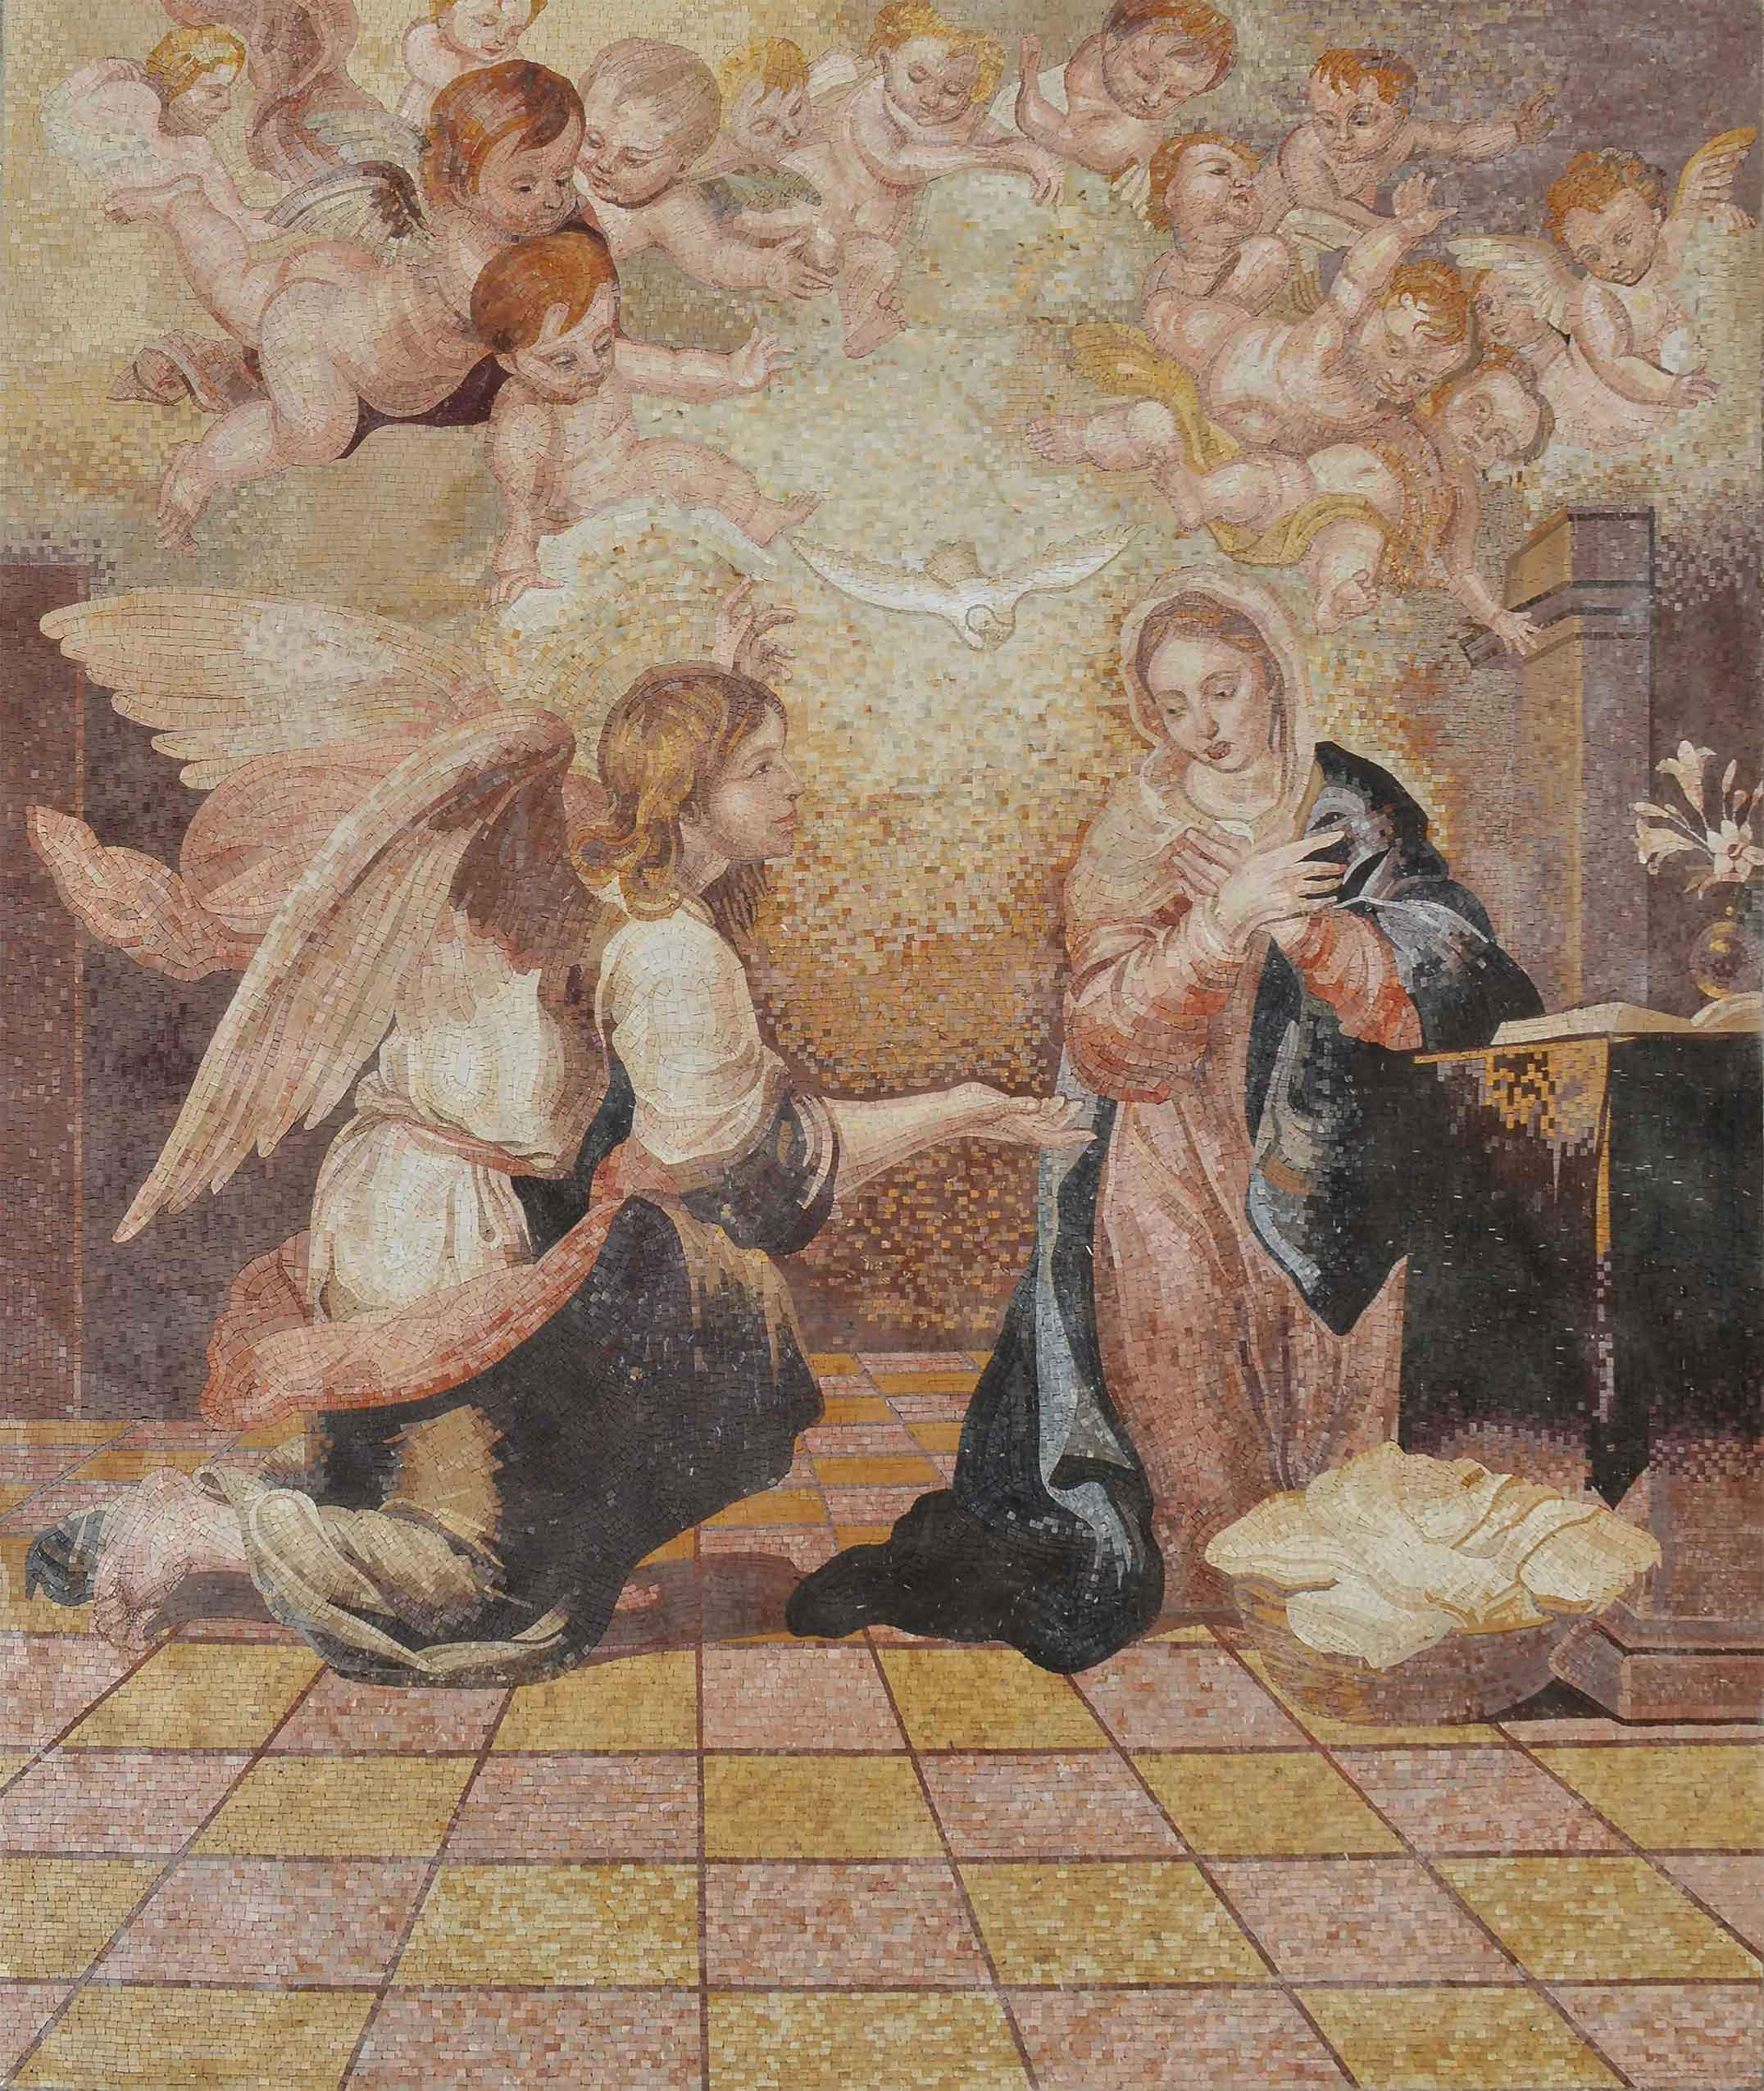 Annunciation of Virgin Mary - Mosaic Art Reproduction